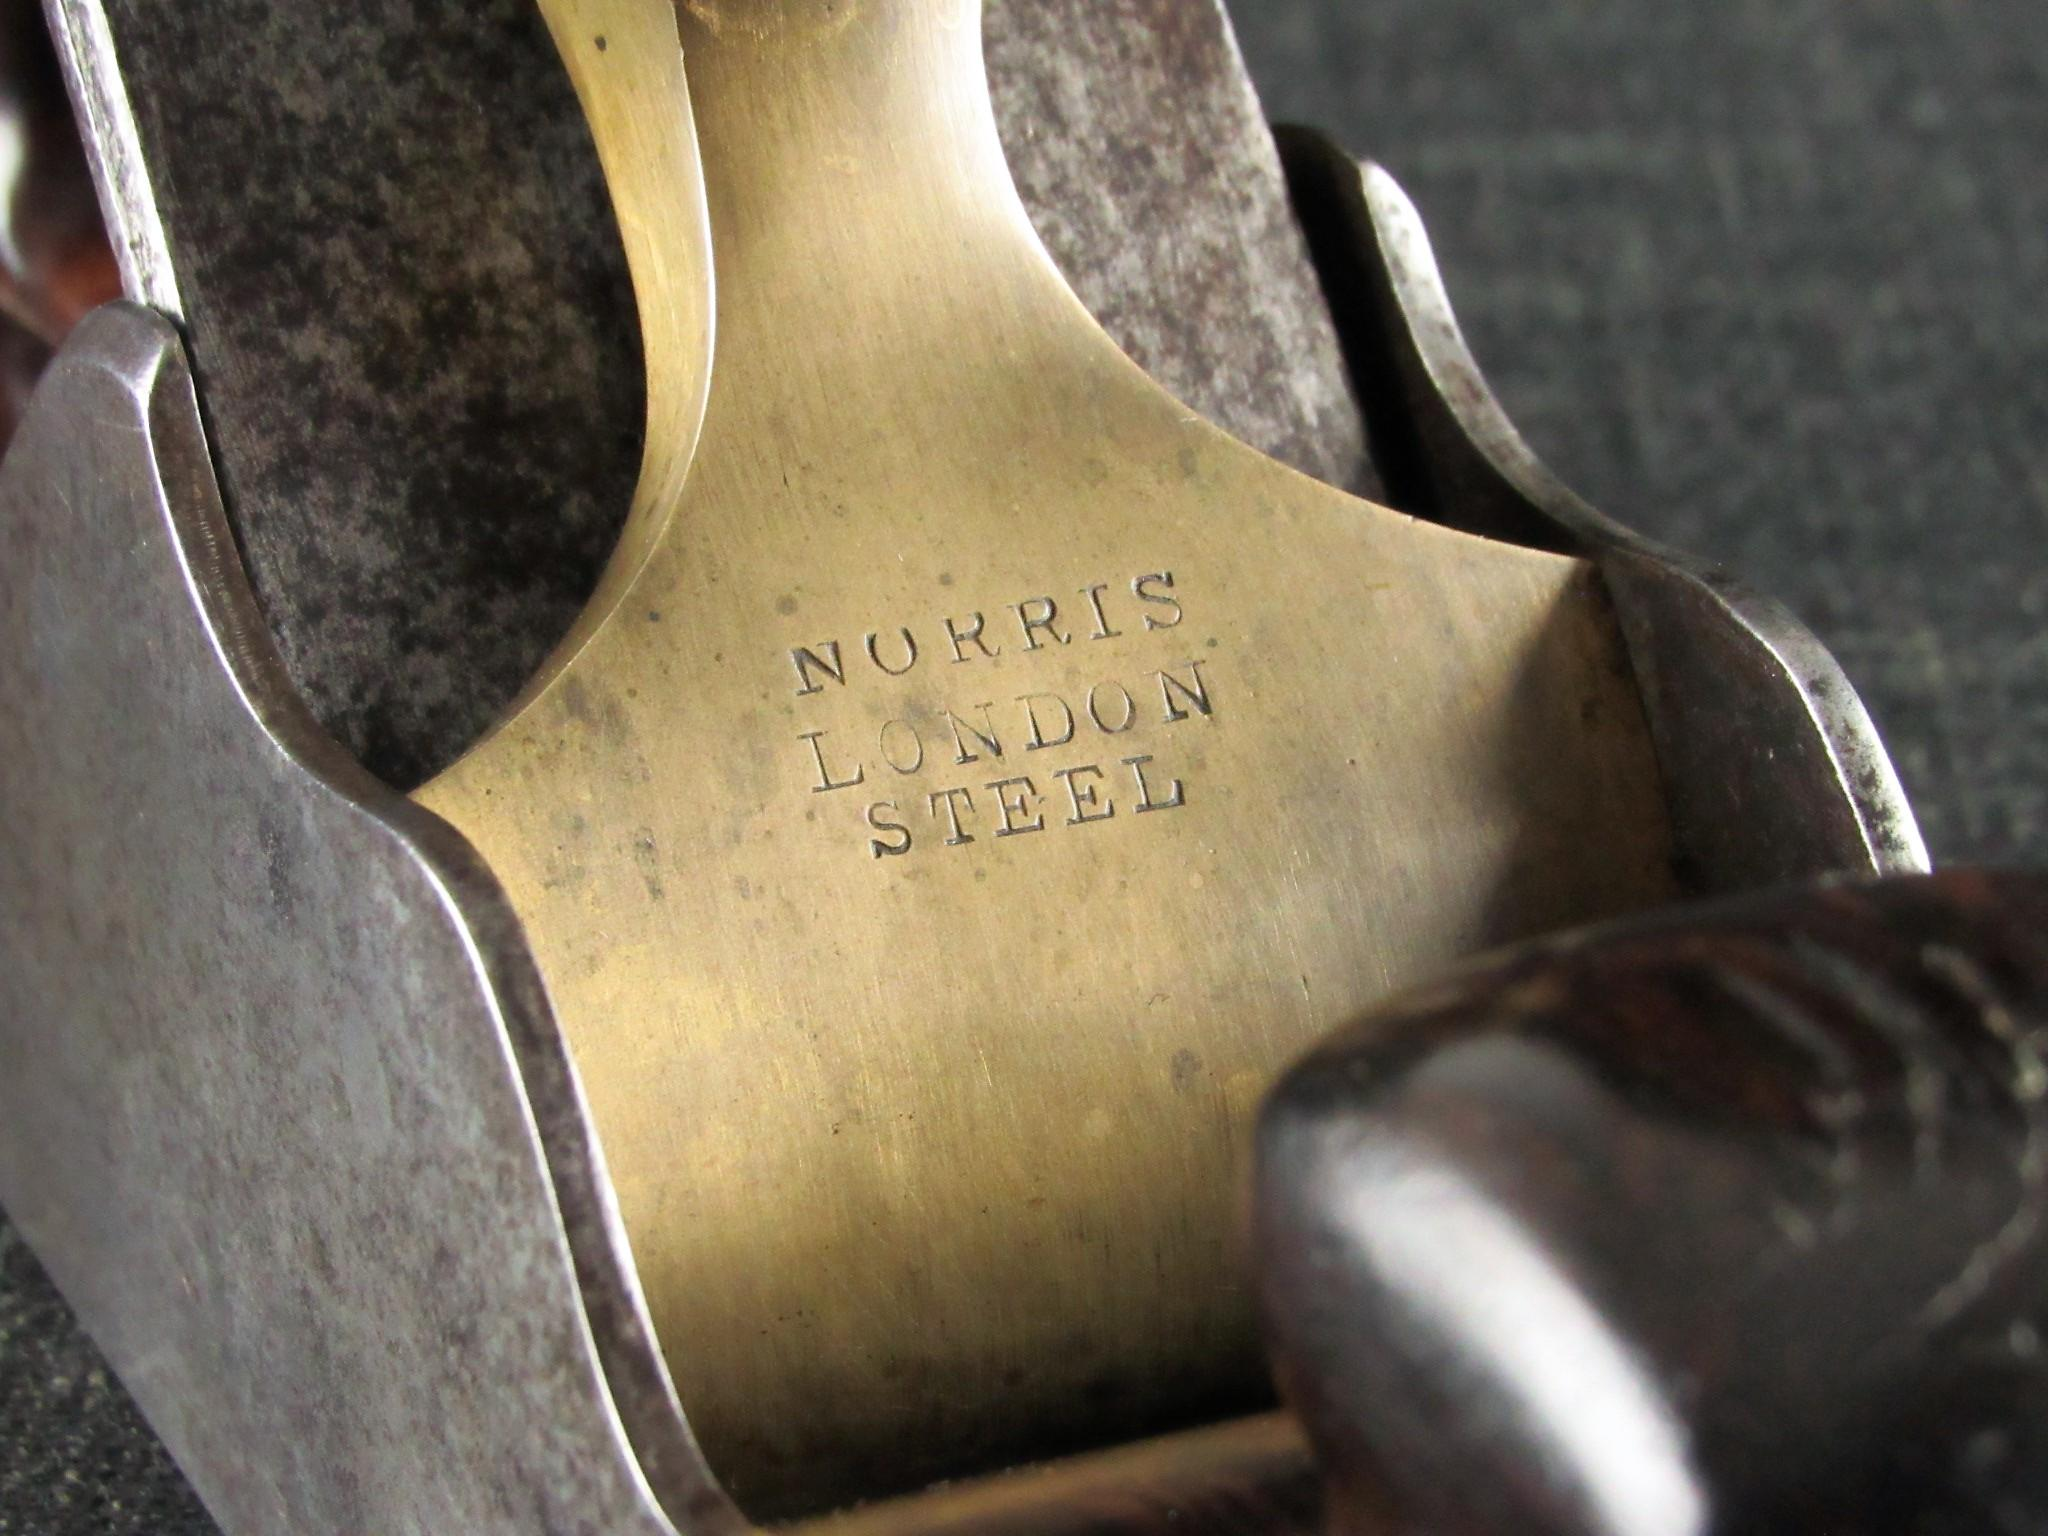 An Unusual Norris Panel Plane - by Mathieson?